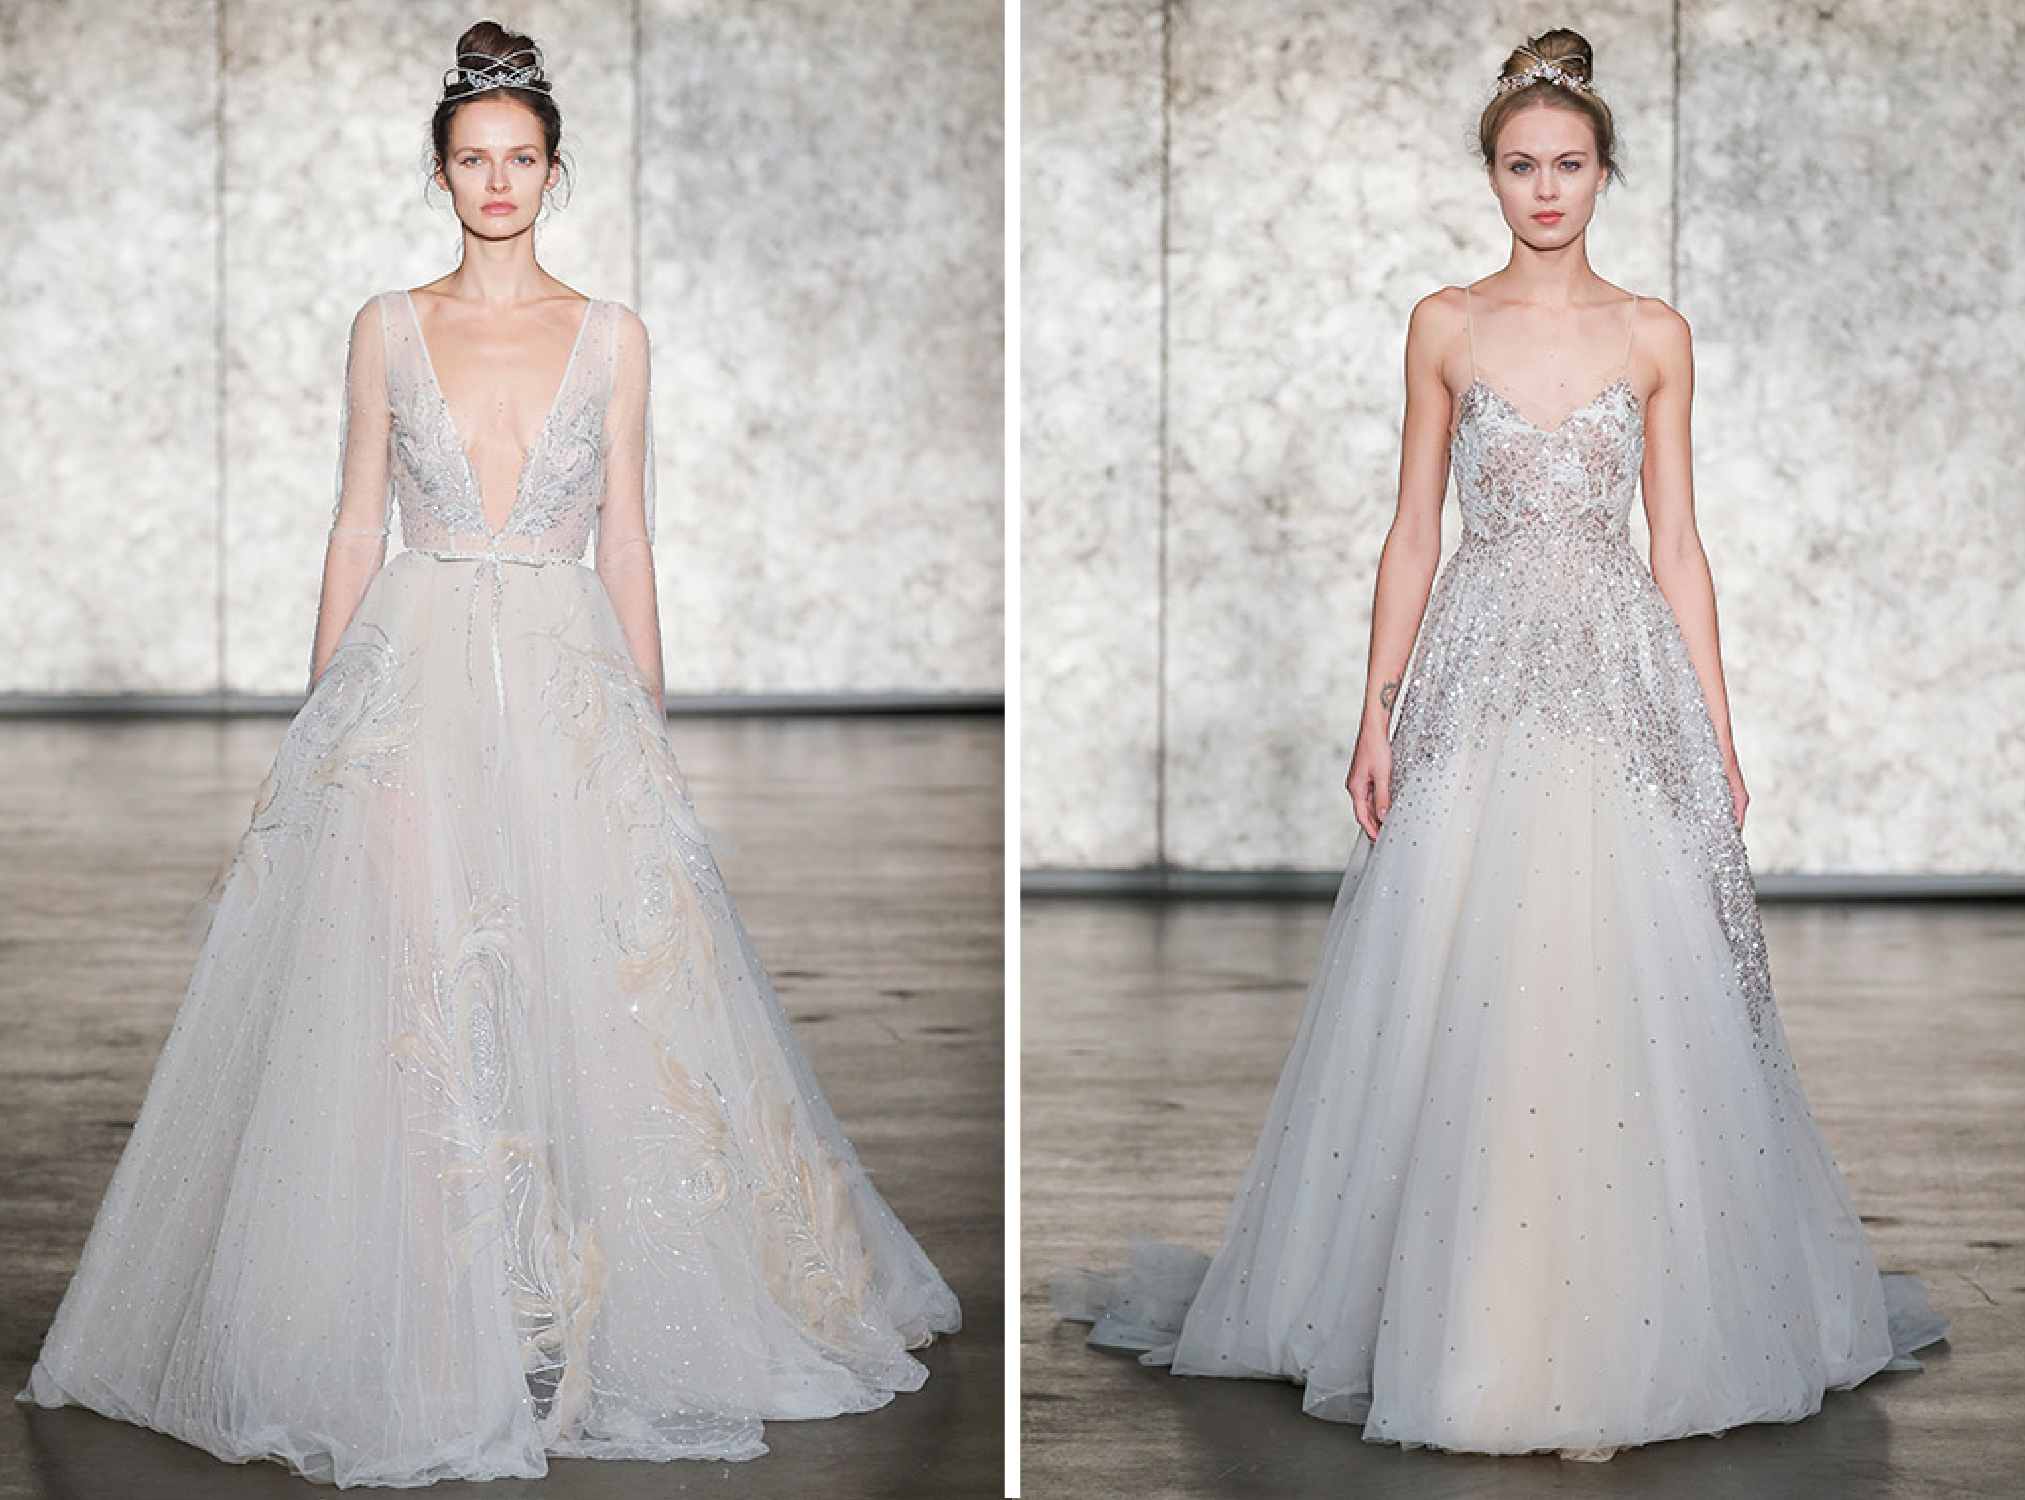 Inbal Dror at Mark Ingram Atelier